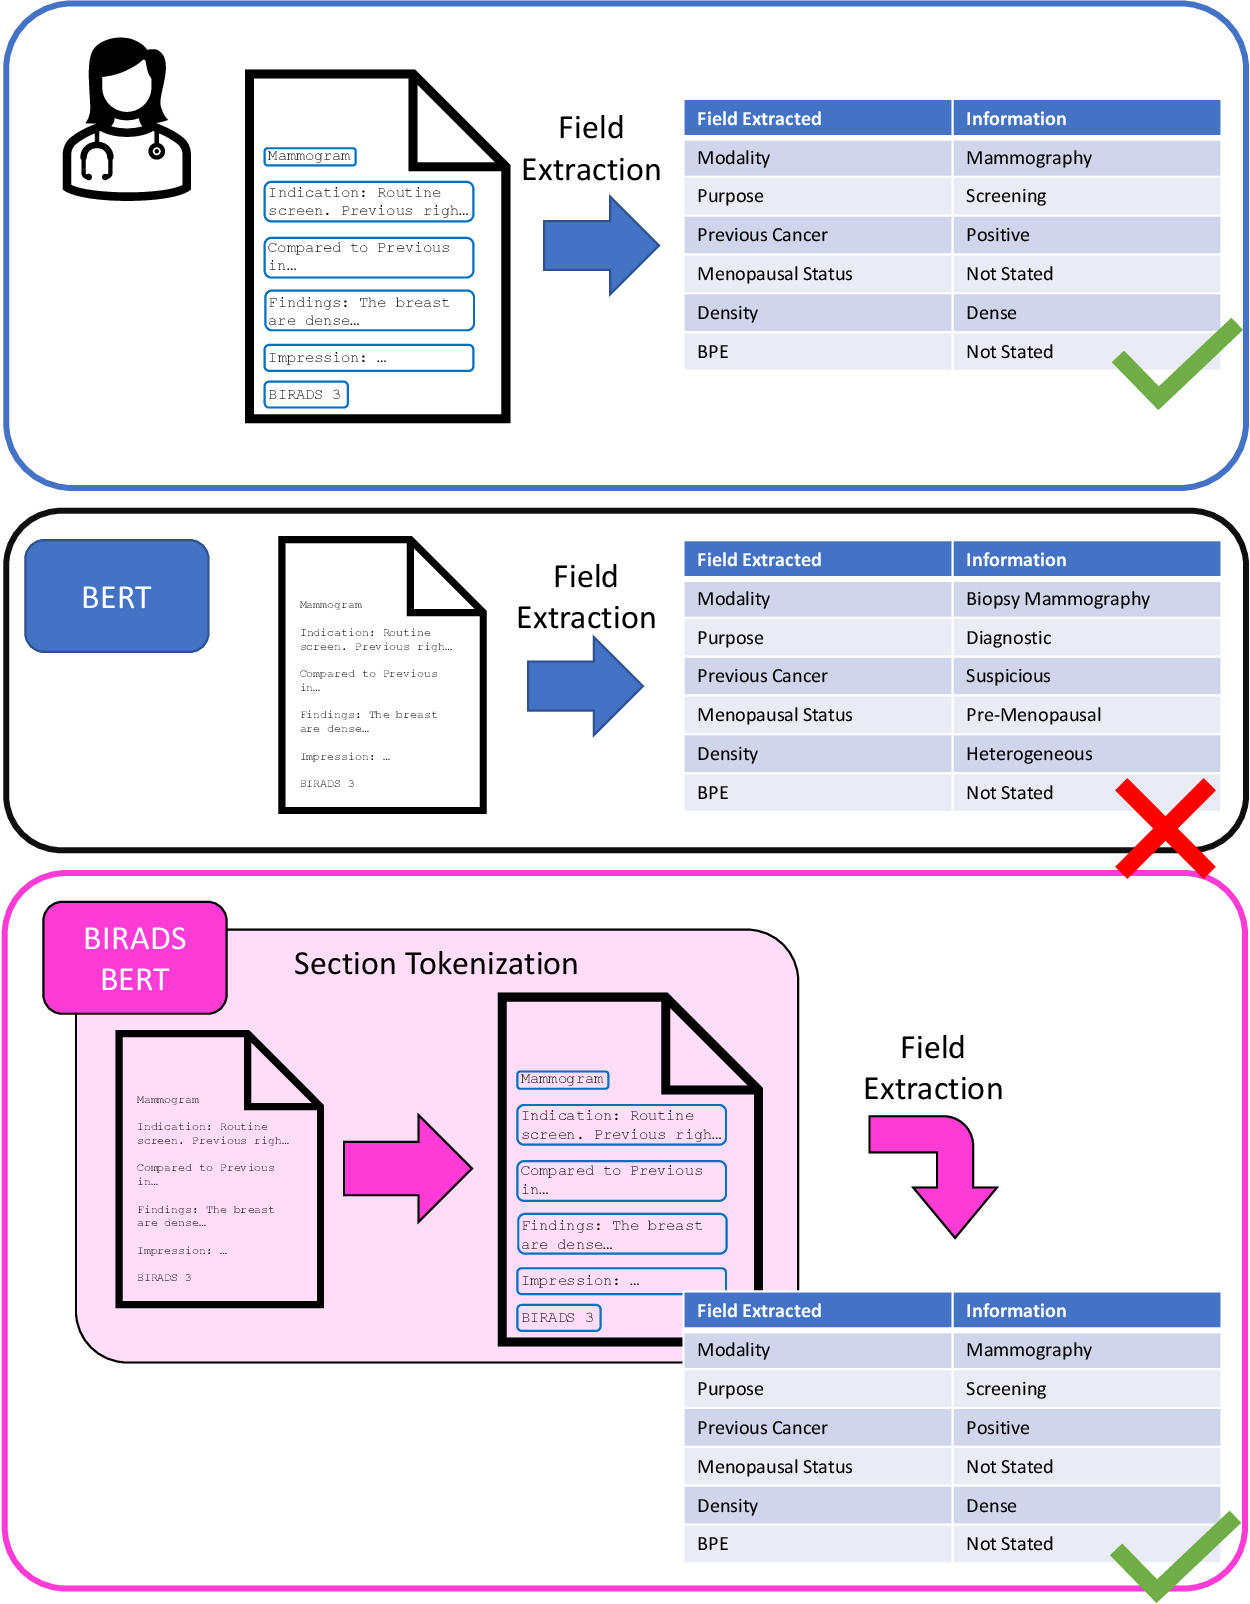 Figure 2 for BI-RADS BERT & Using Section Tokenization to Understand Radiology Reports